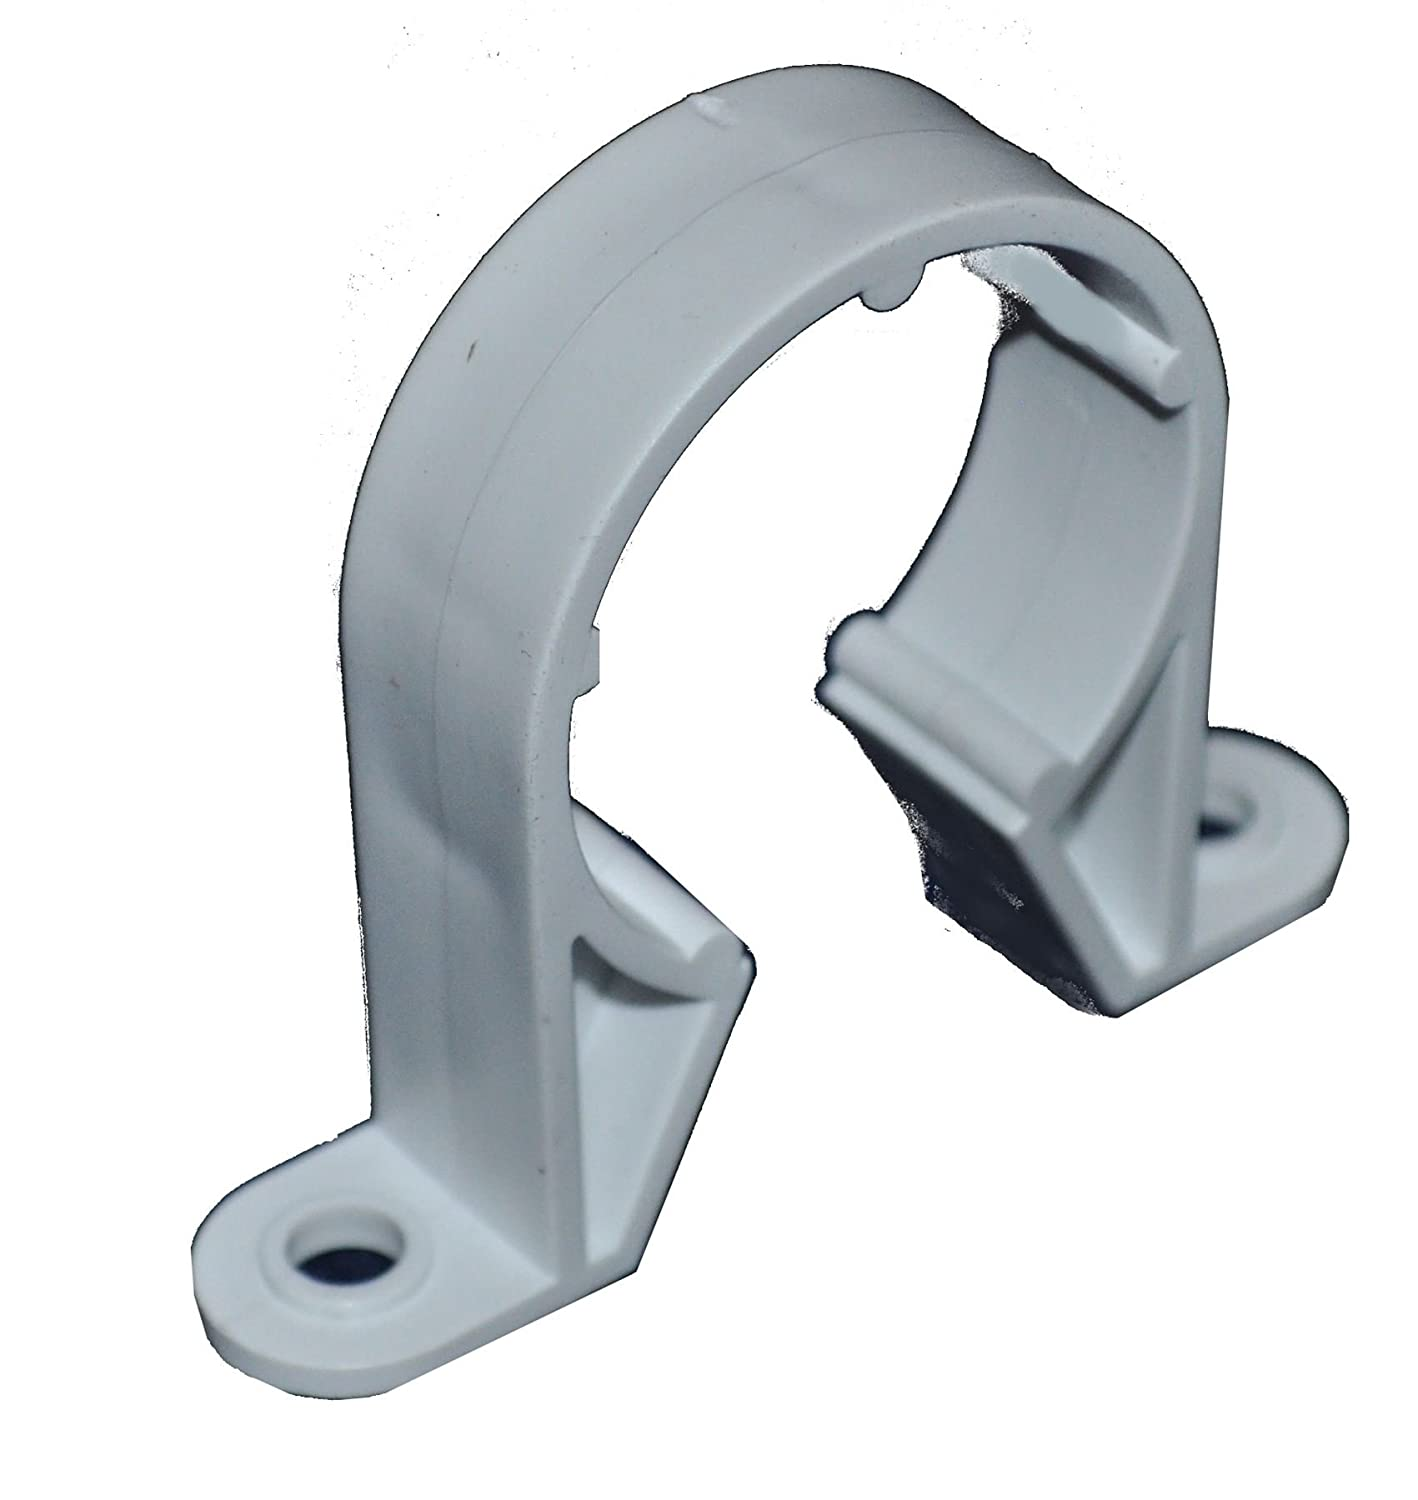 NEW Pipe Clip 40mm Black plumbing Waste pipe  Each